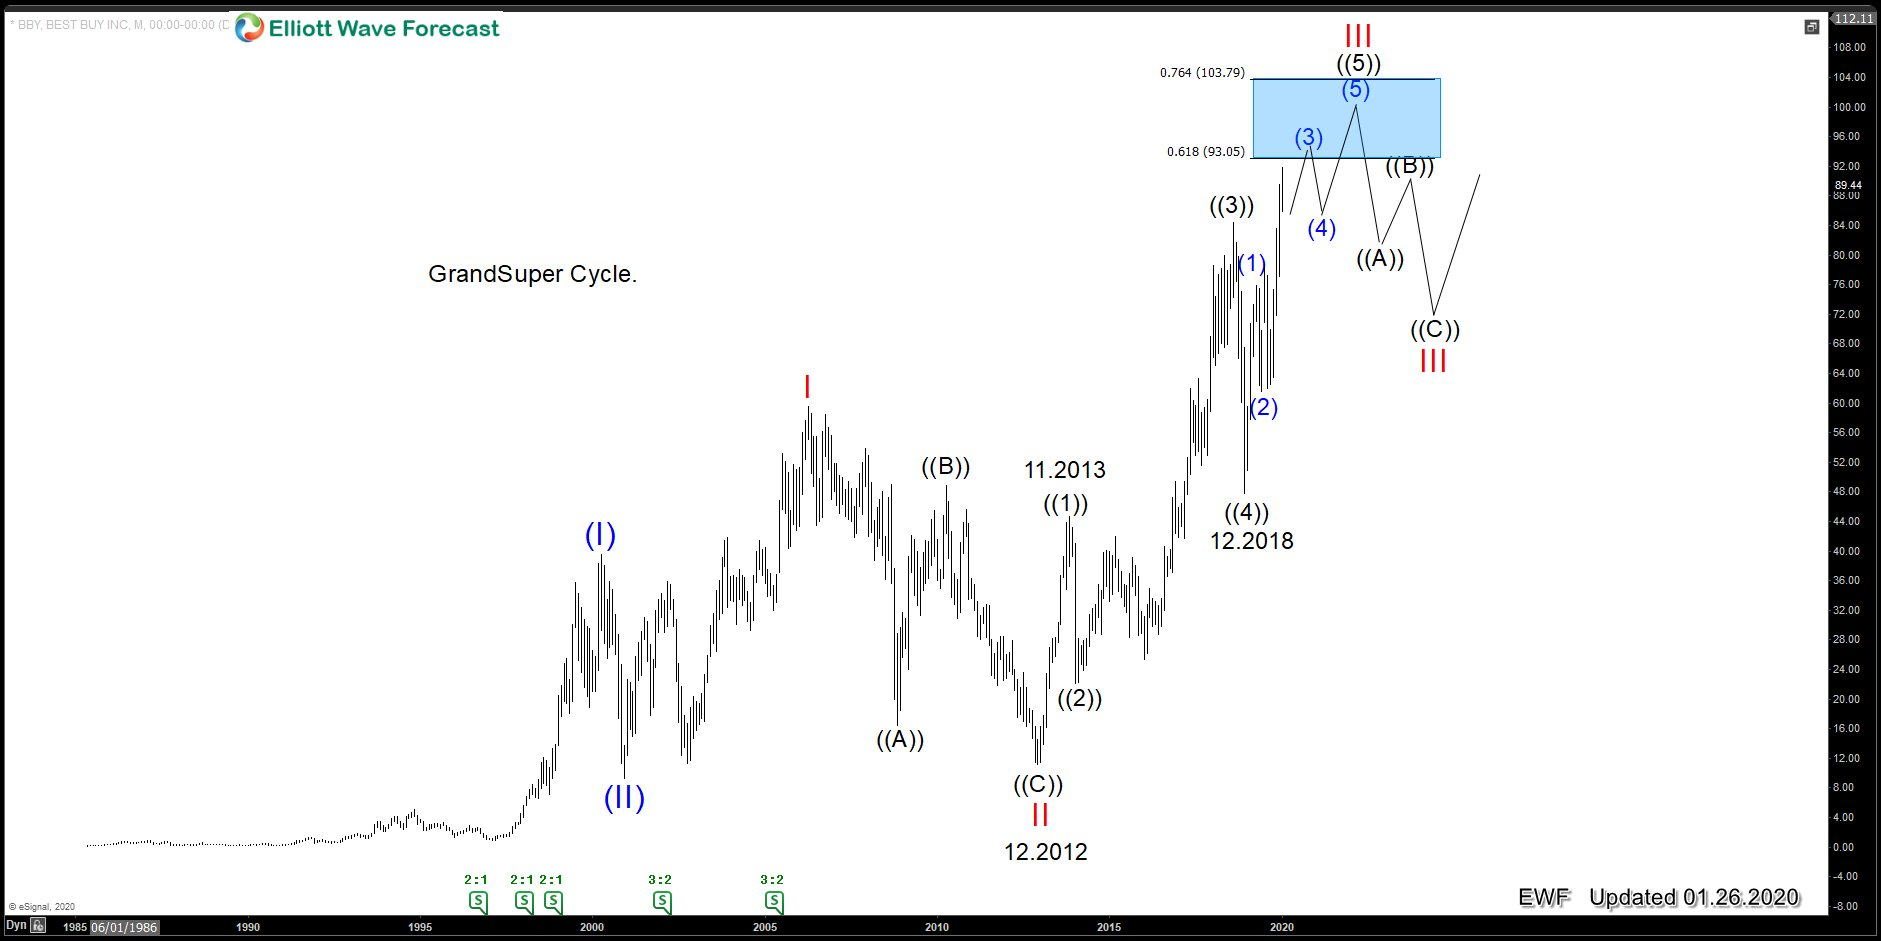 Best Buy (BBY): The Instrument is ending wave III of (III)